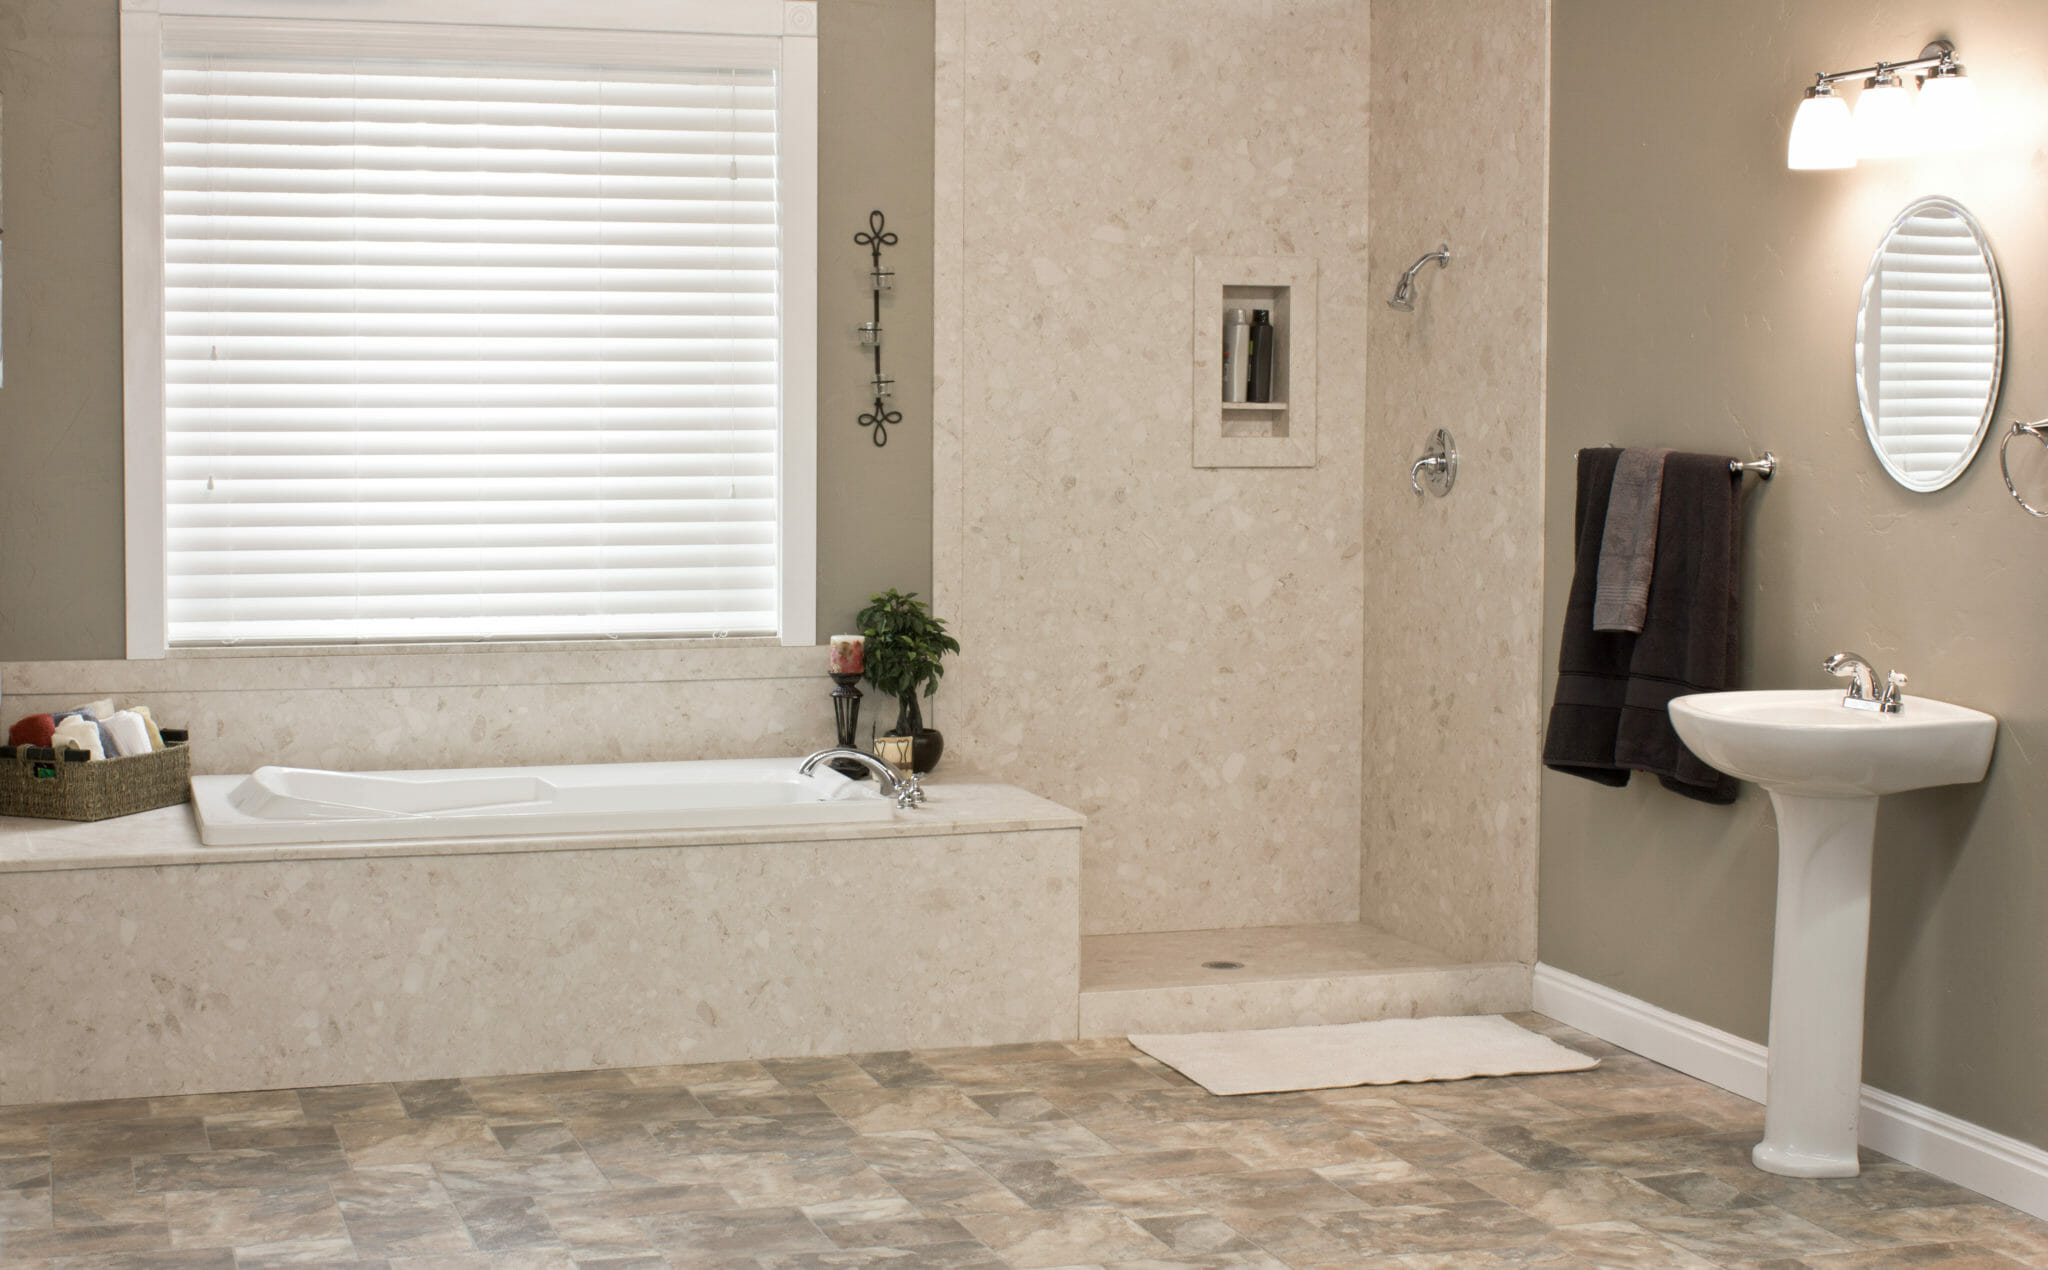 Tips for Getting Your Bathroom Lighting Right